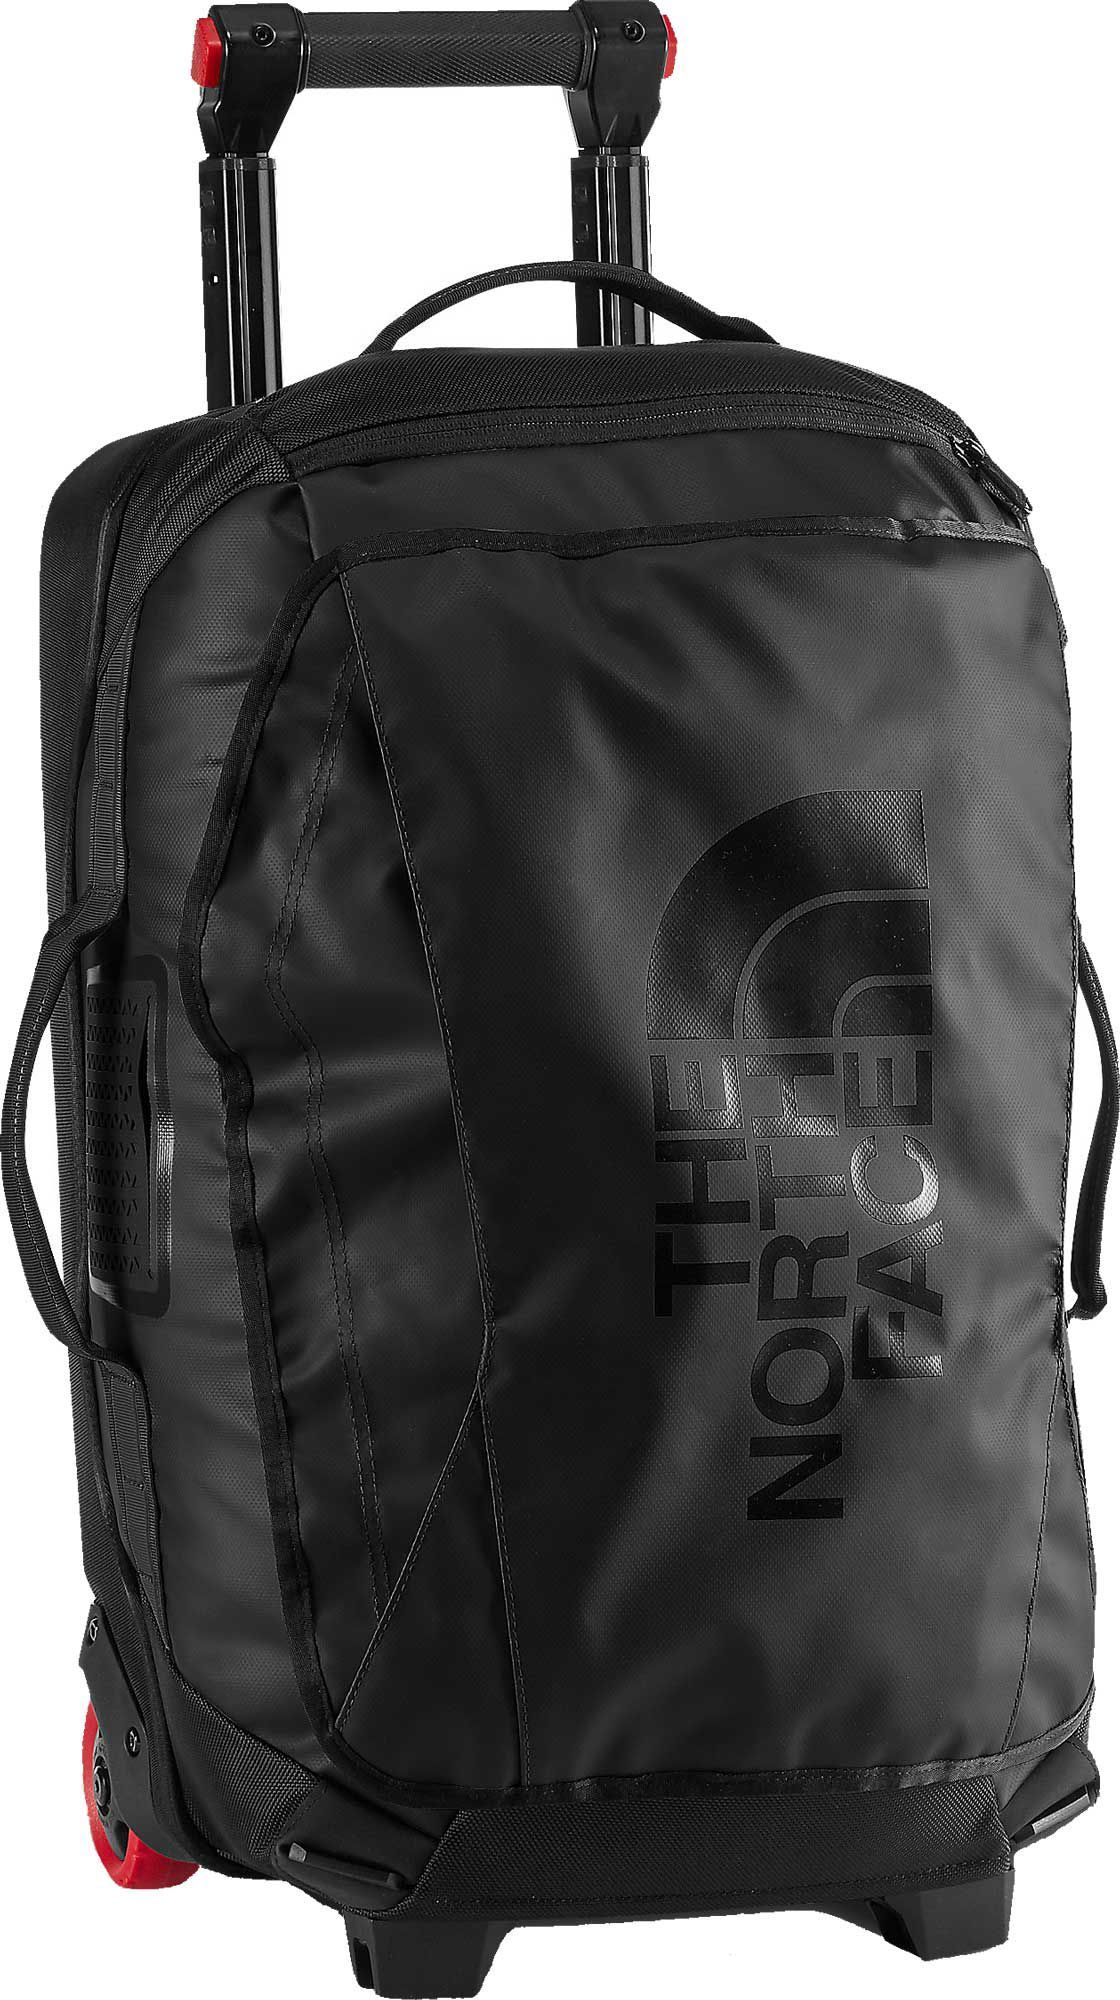 23a5df9f5 The North Face Rolling Thunder 22 Travel Bag | Building Materials ...